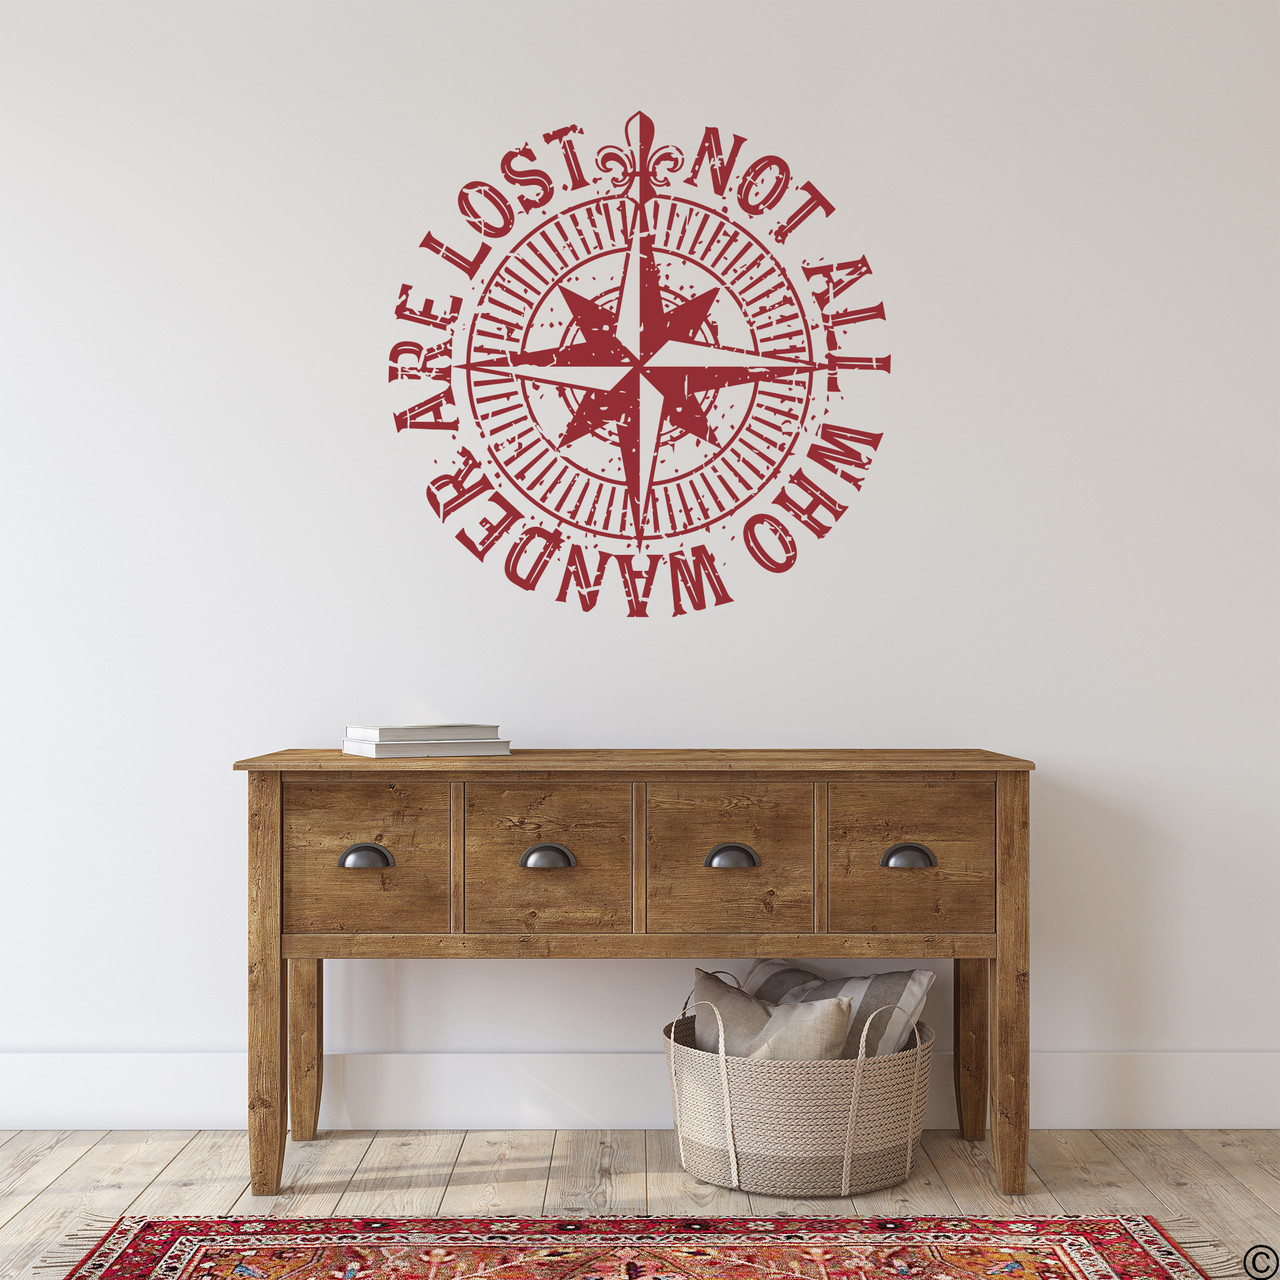 """The """"Not all who wander are lost"""" distressed compass rose wall decal shown here in dark red vinyl."""